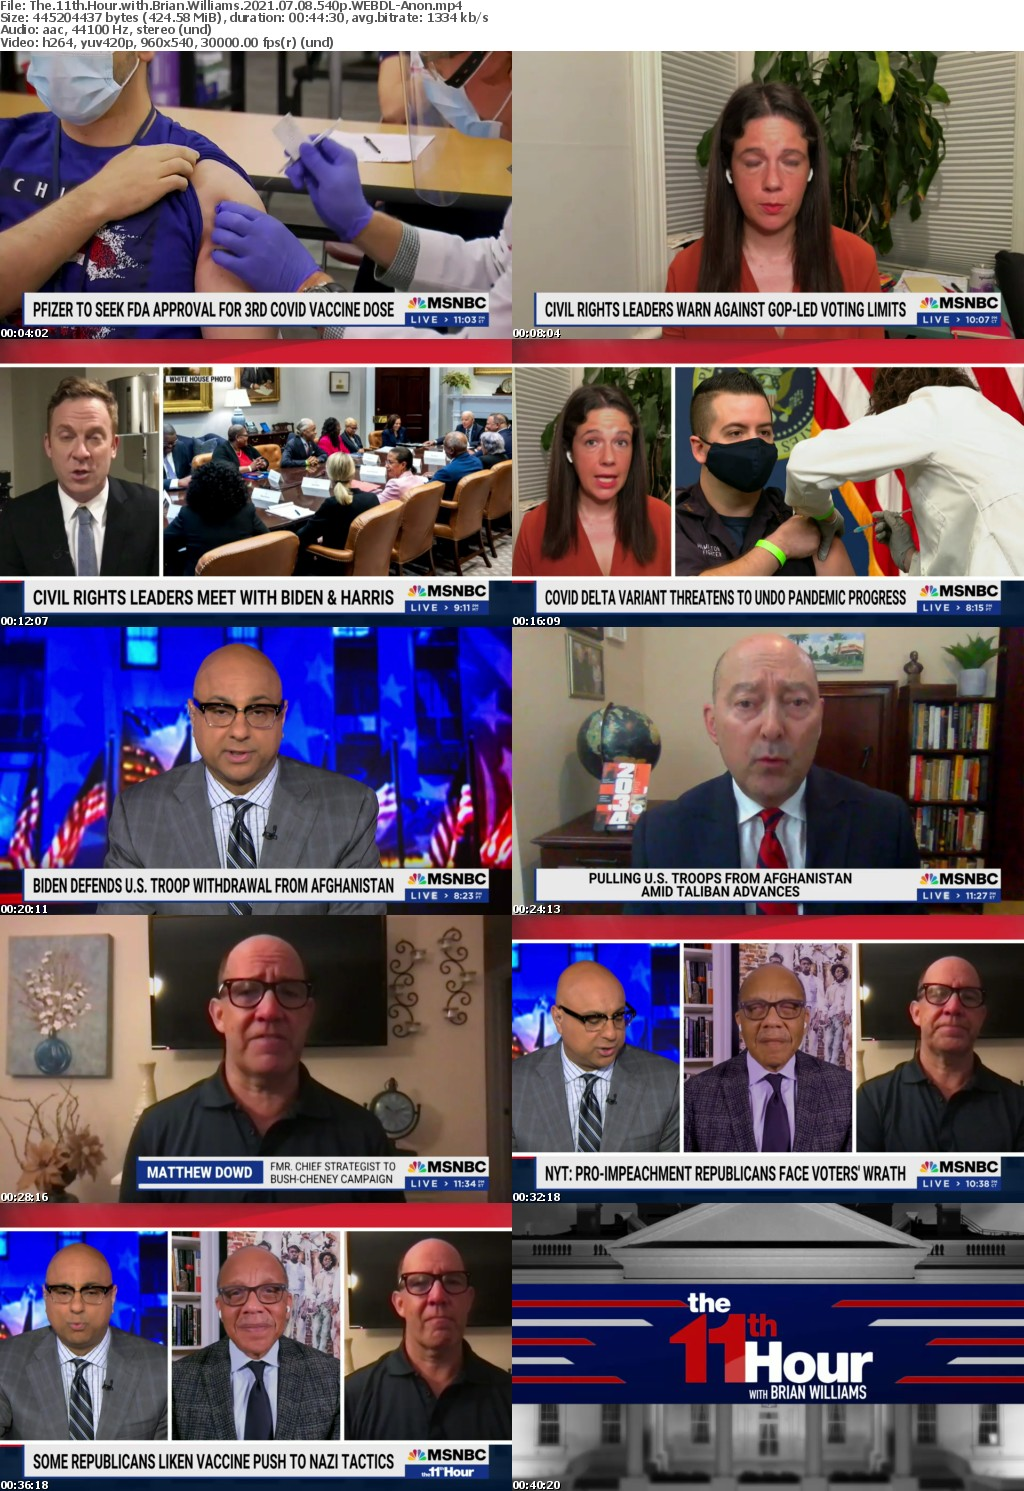 The 11th Hour with Brian Williams 2021 07 08 540p WEBDL-Anon